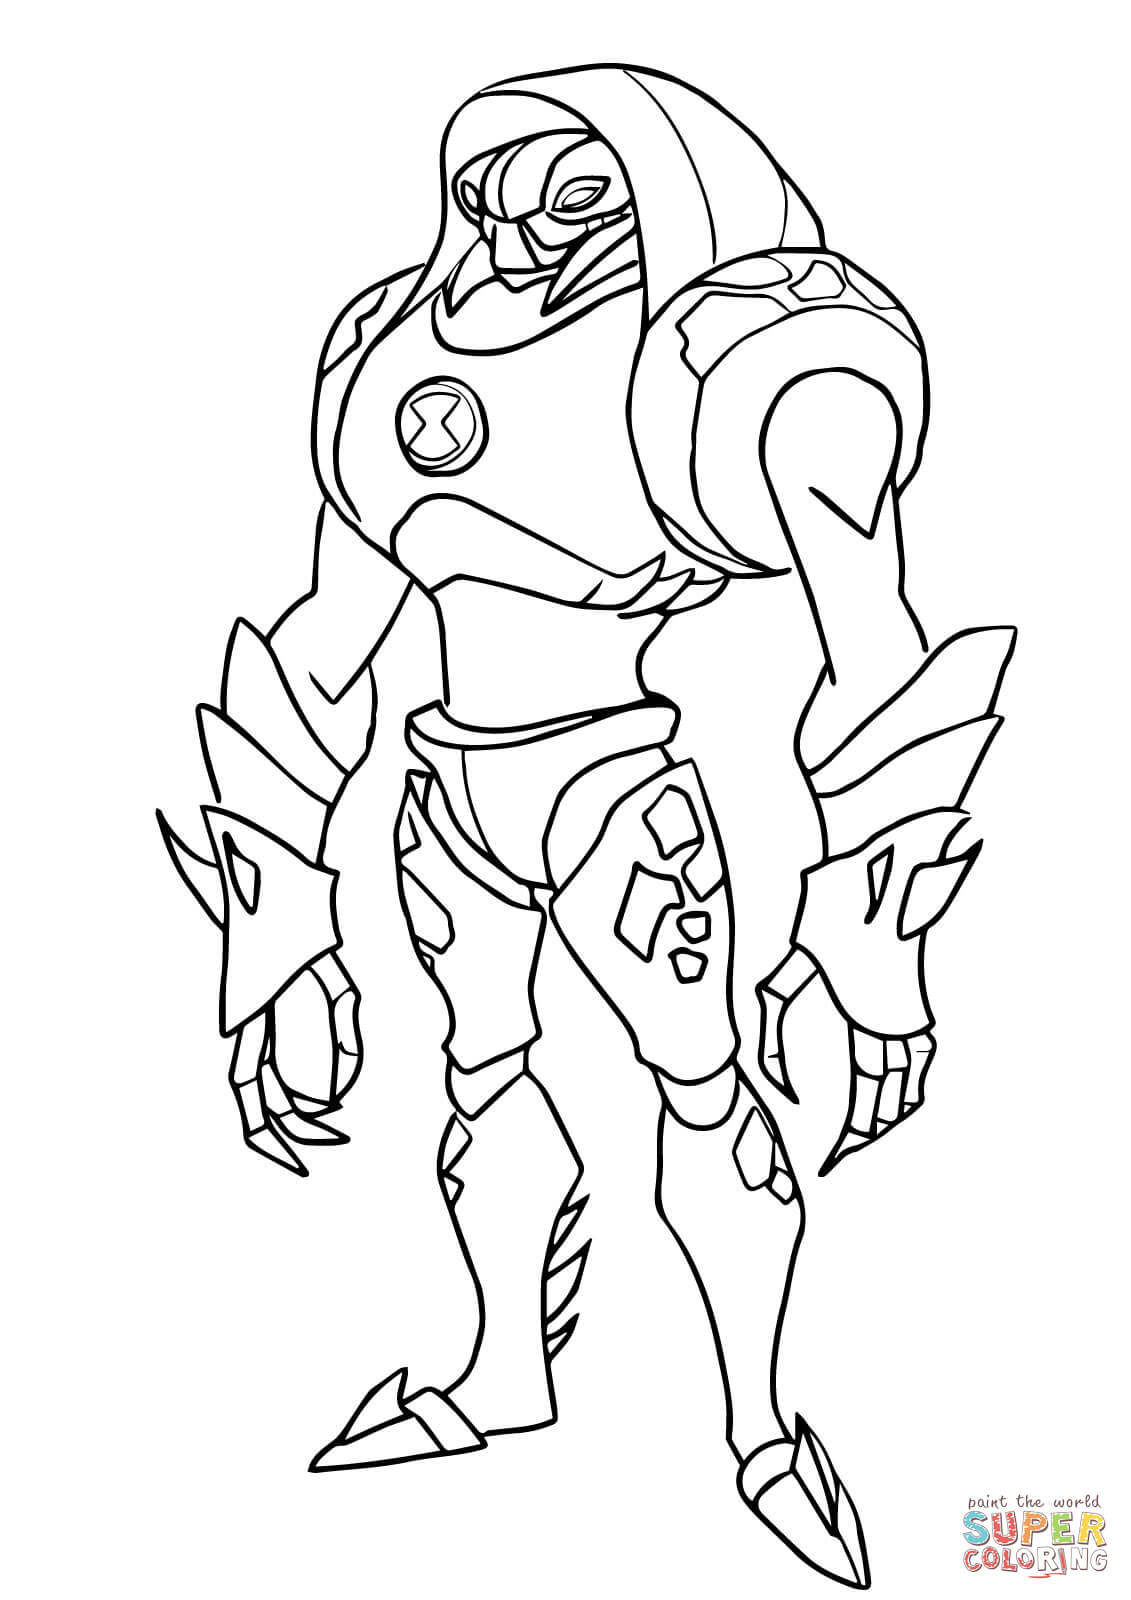 Ben 10 Coloring Pages at GetDrawings.com | Free for personal use Ben ...